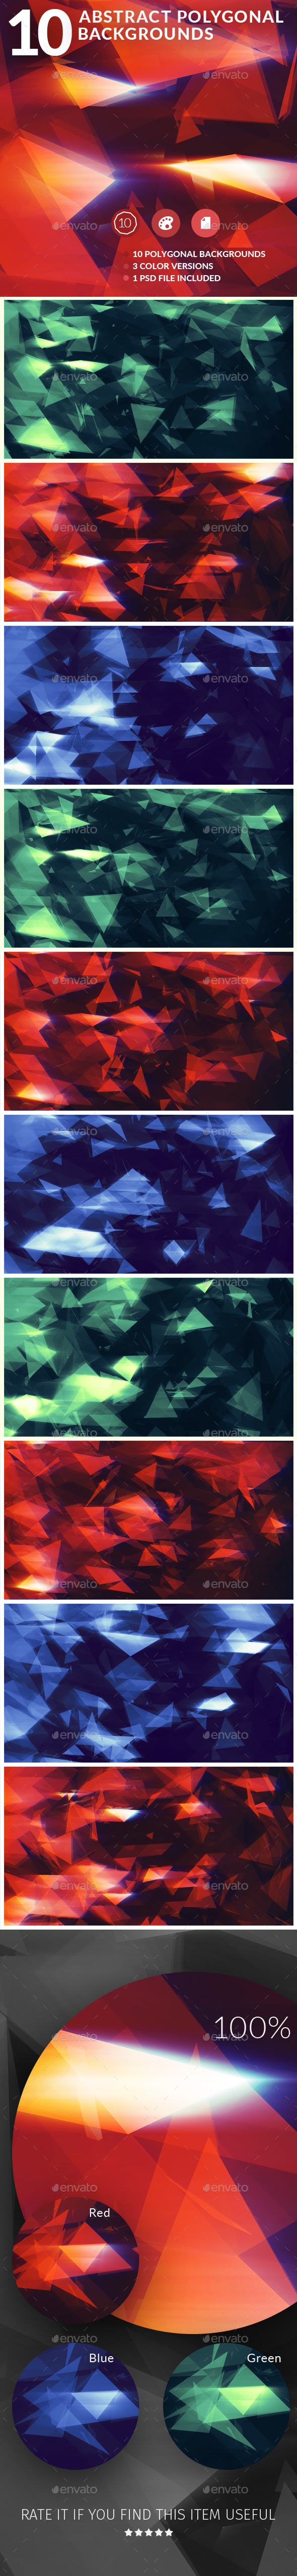 10 Abstract Polygonal Backgrounds - Abstract Backgrounds